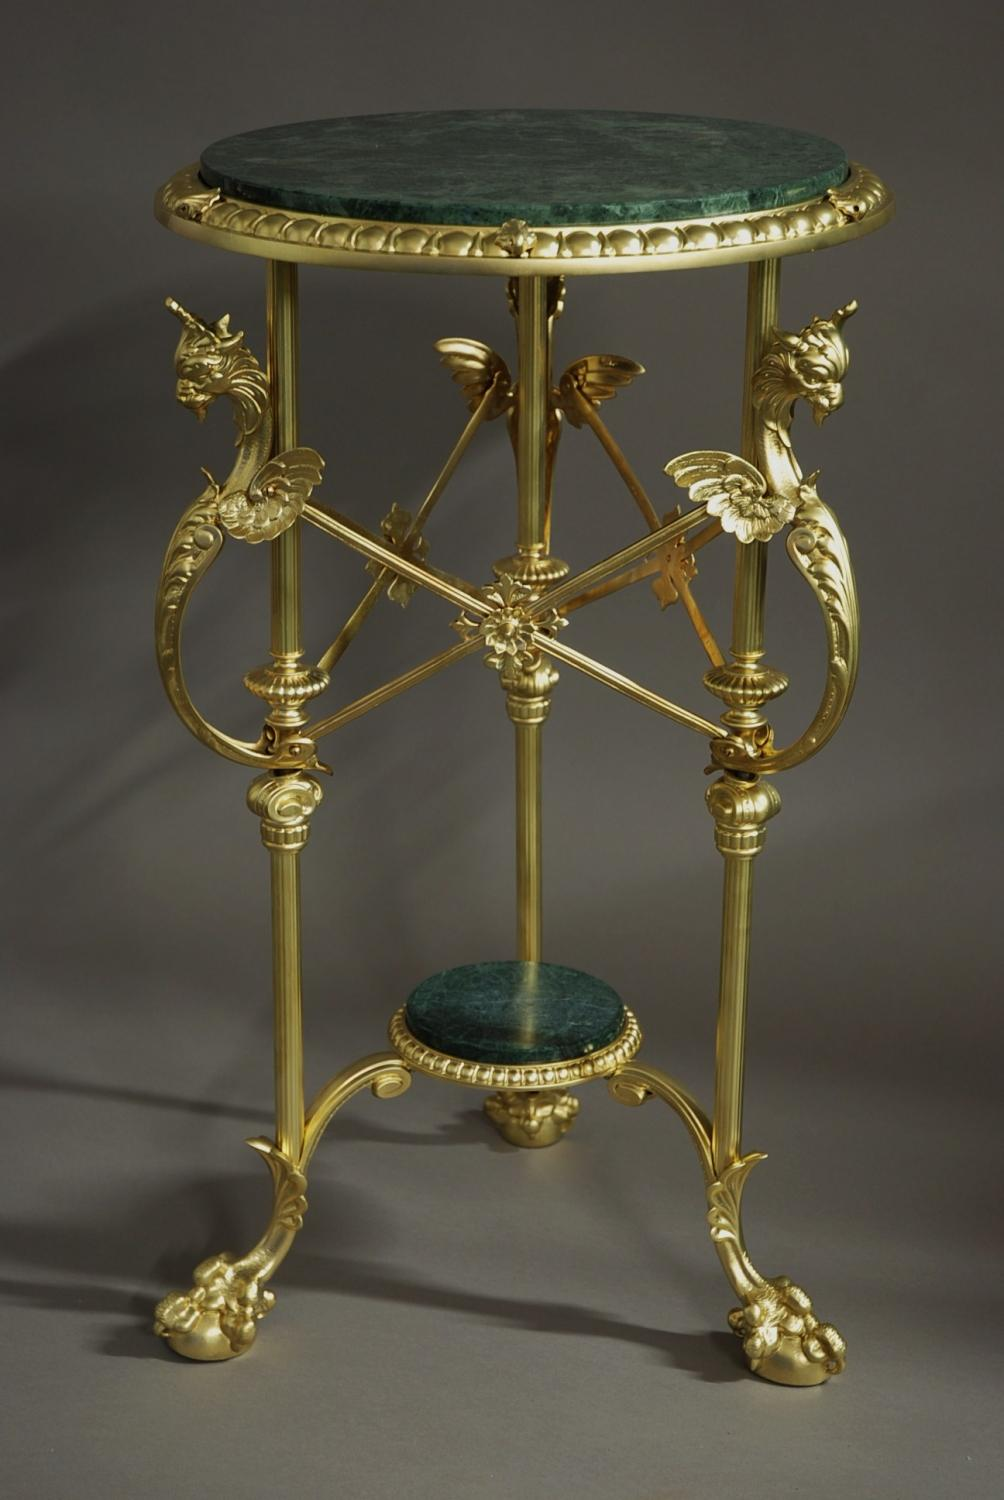 Early 20thc French gilt metal gueridon table